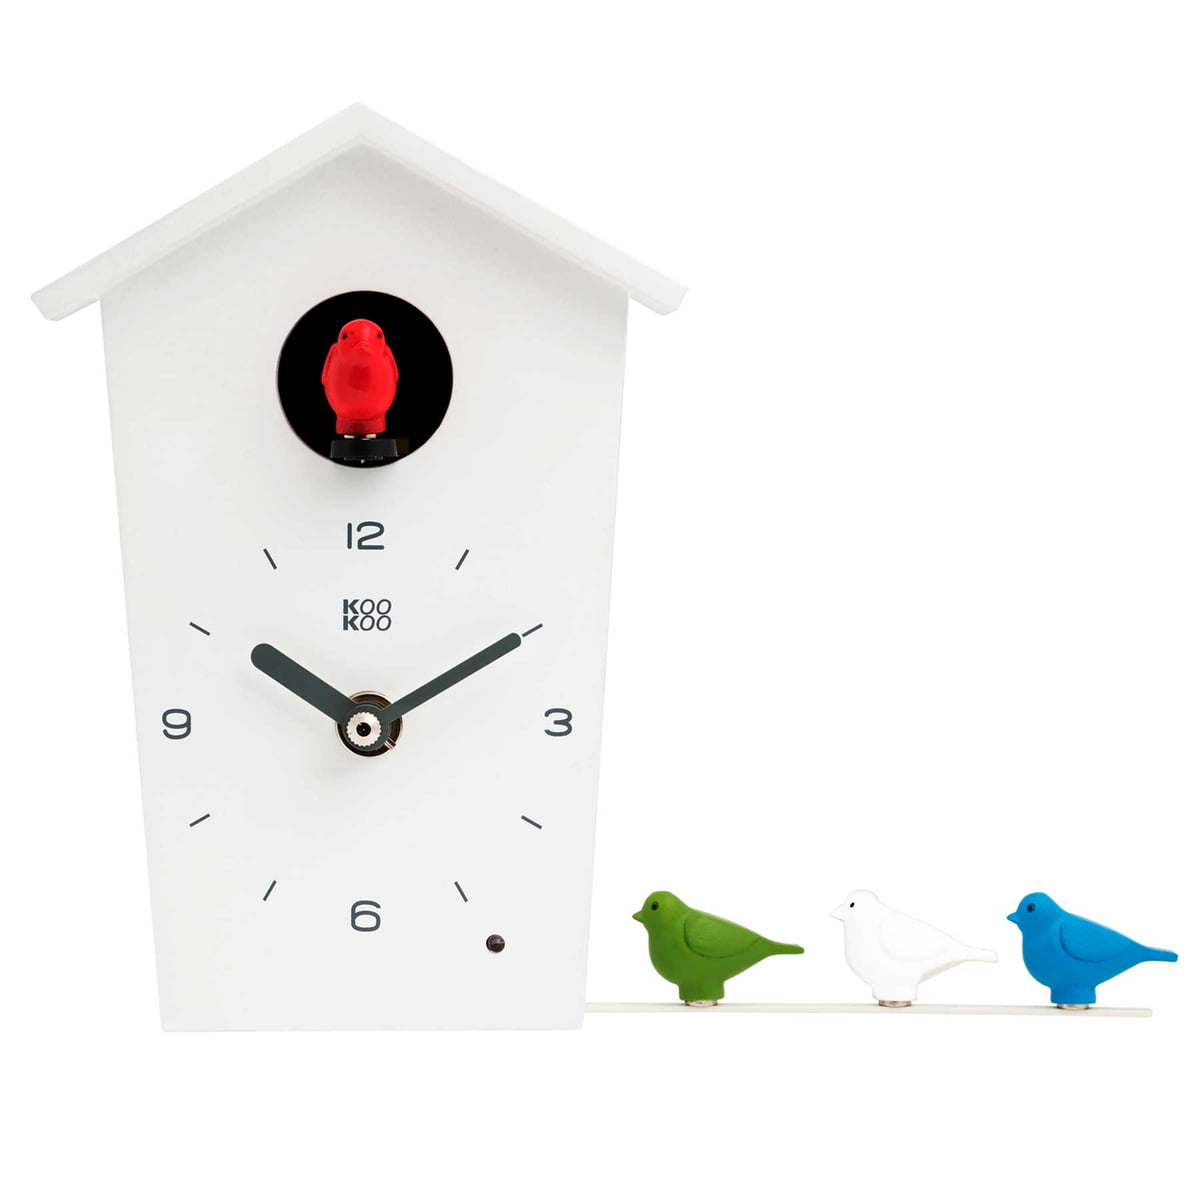 bird house mini von kookoo im design shop. Black Bedroom Furniture Sets. Home Design Ideas